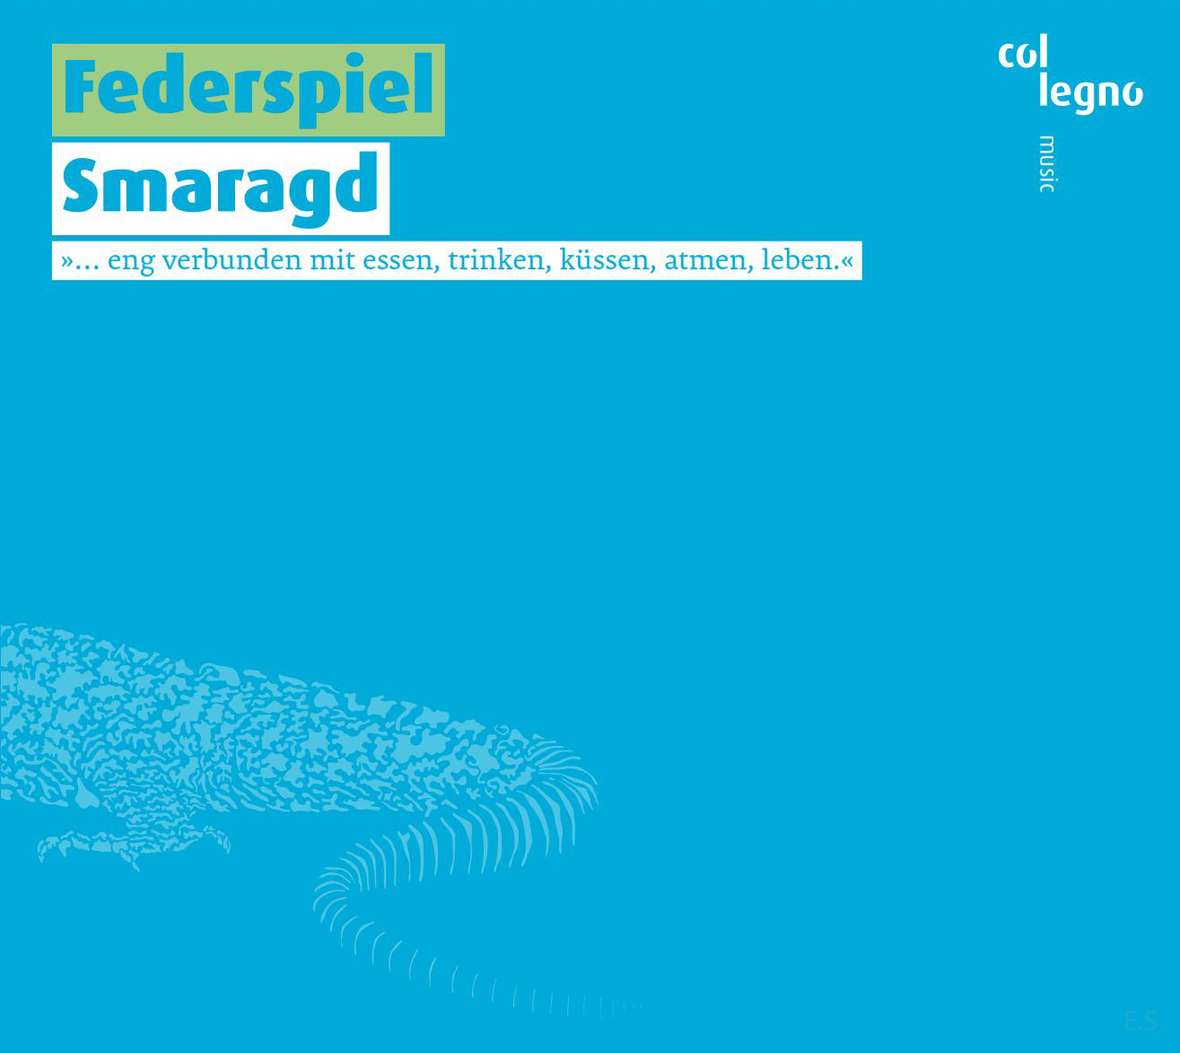 Federspiel Smaragd cover gross